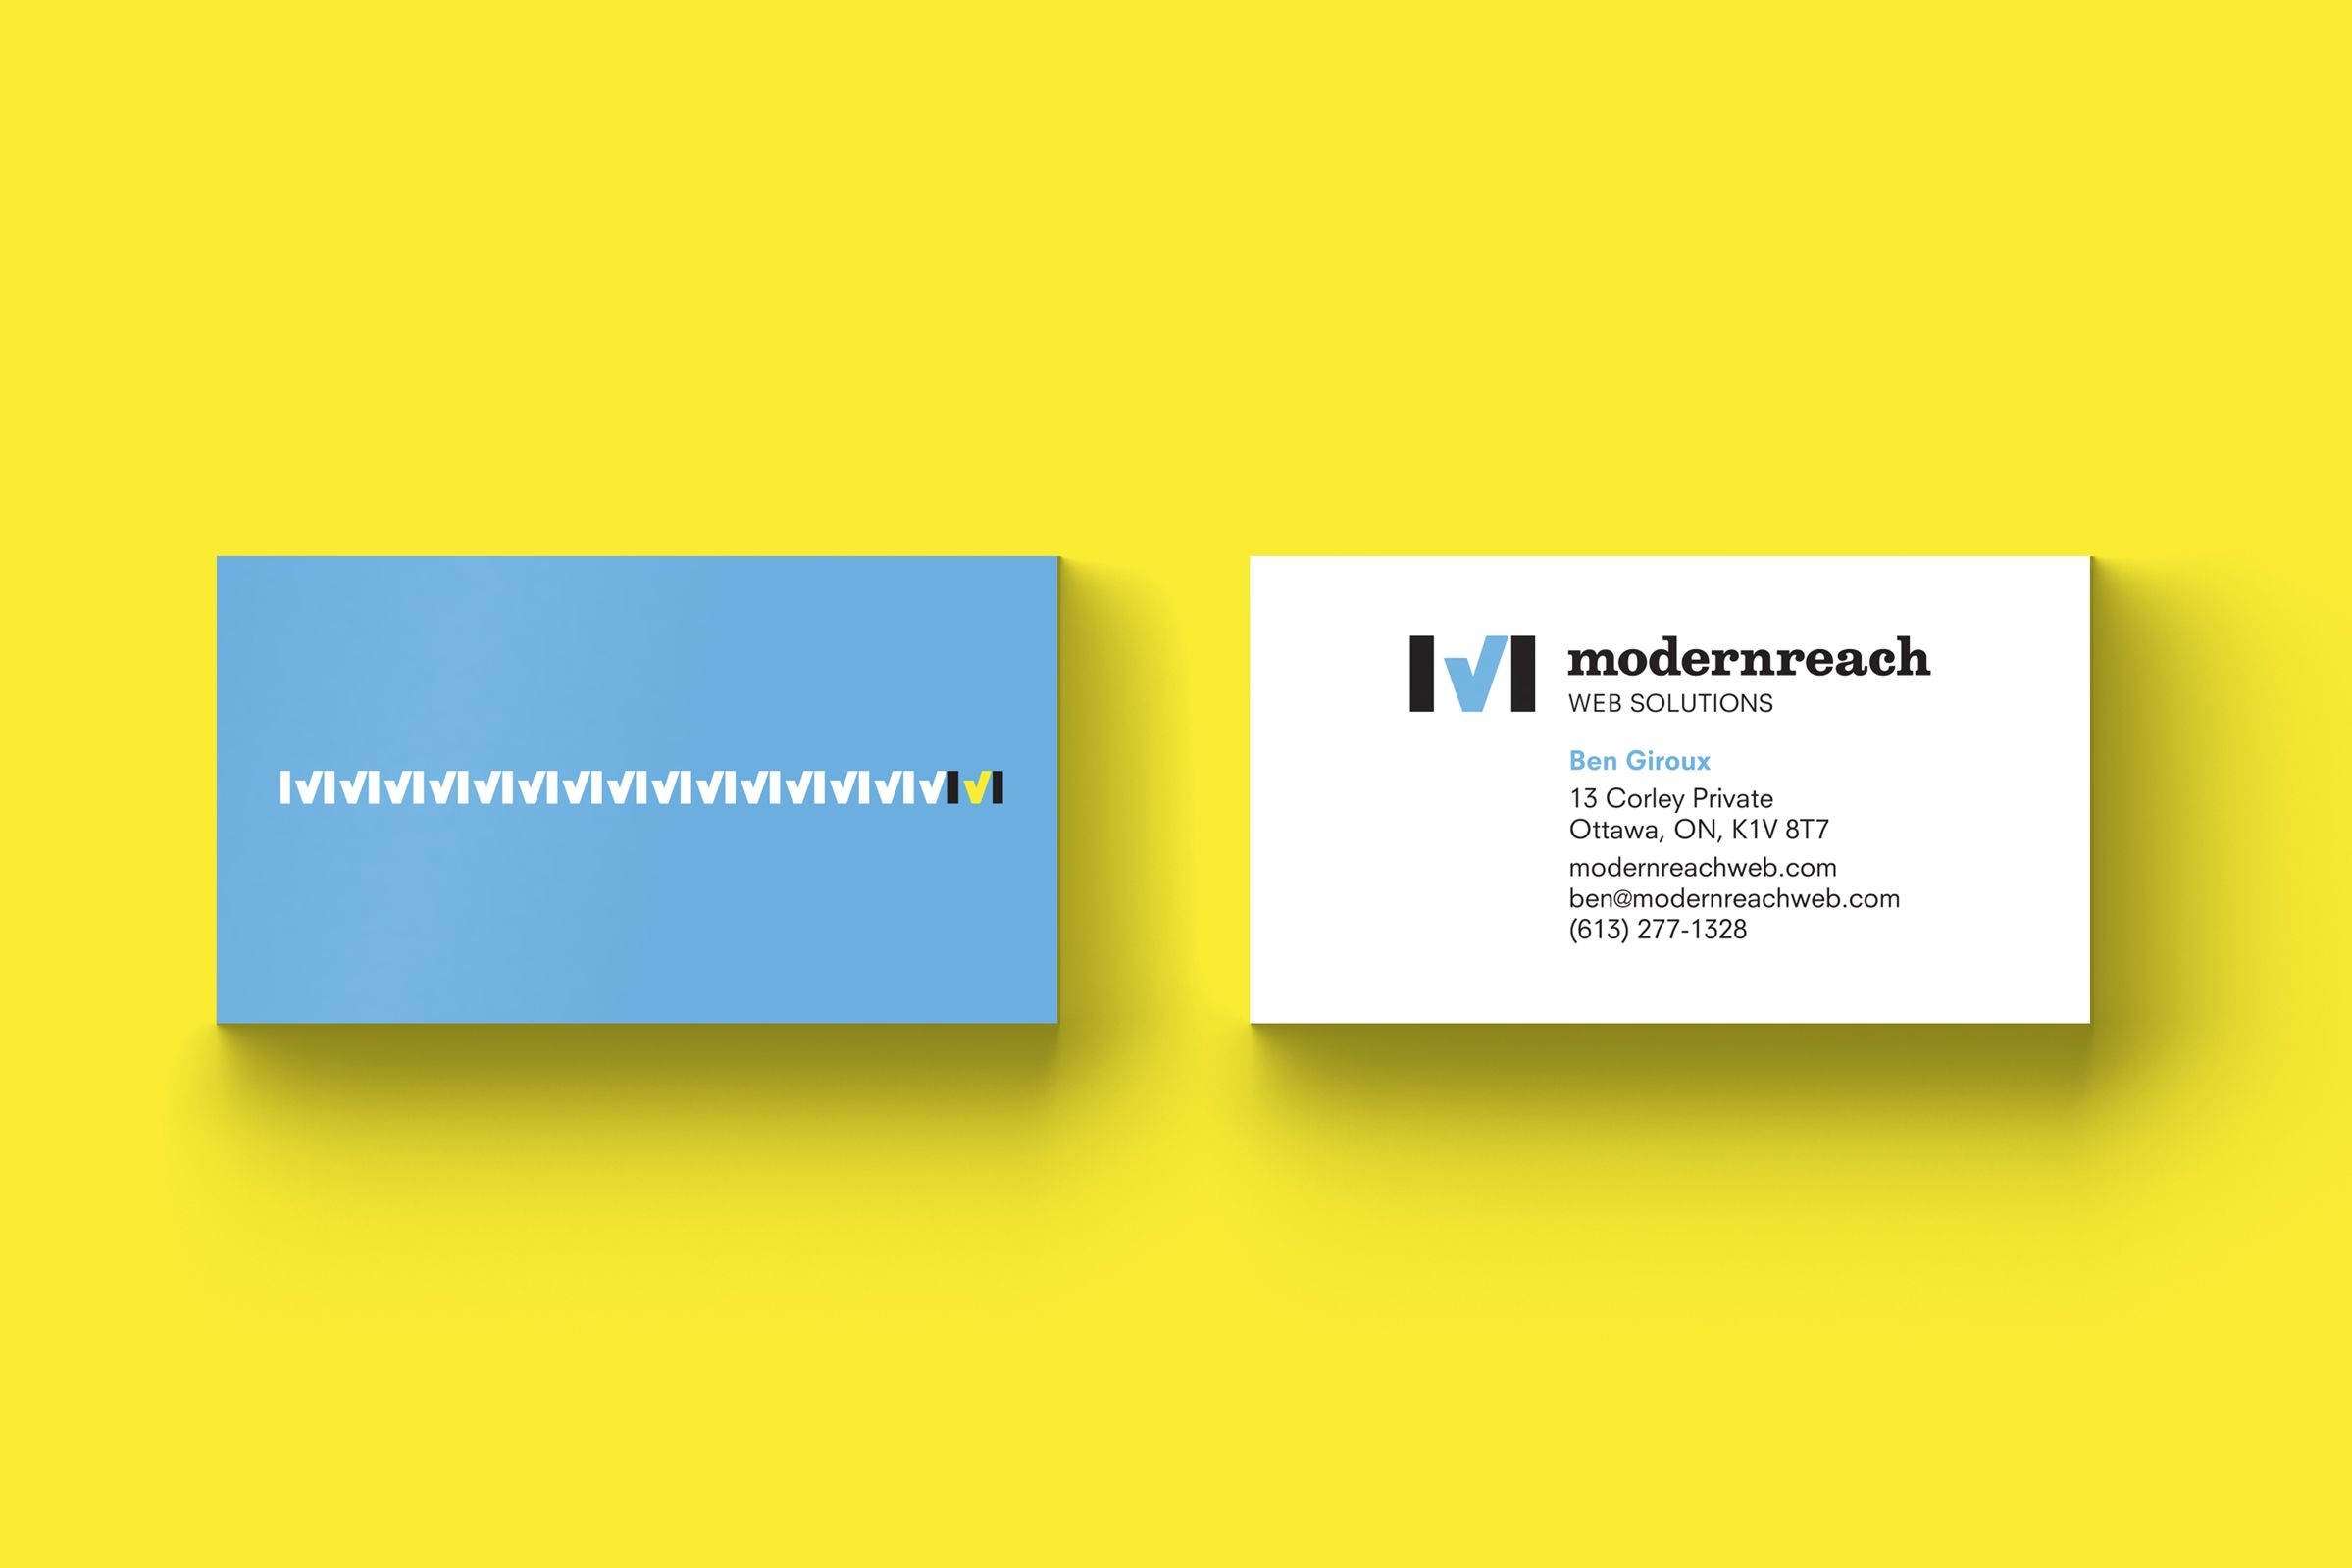 Modernreach Business Card for web company by Ottawa Graphic Designer idApostle